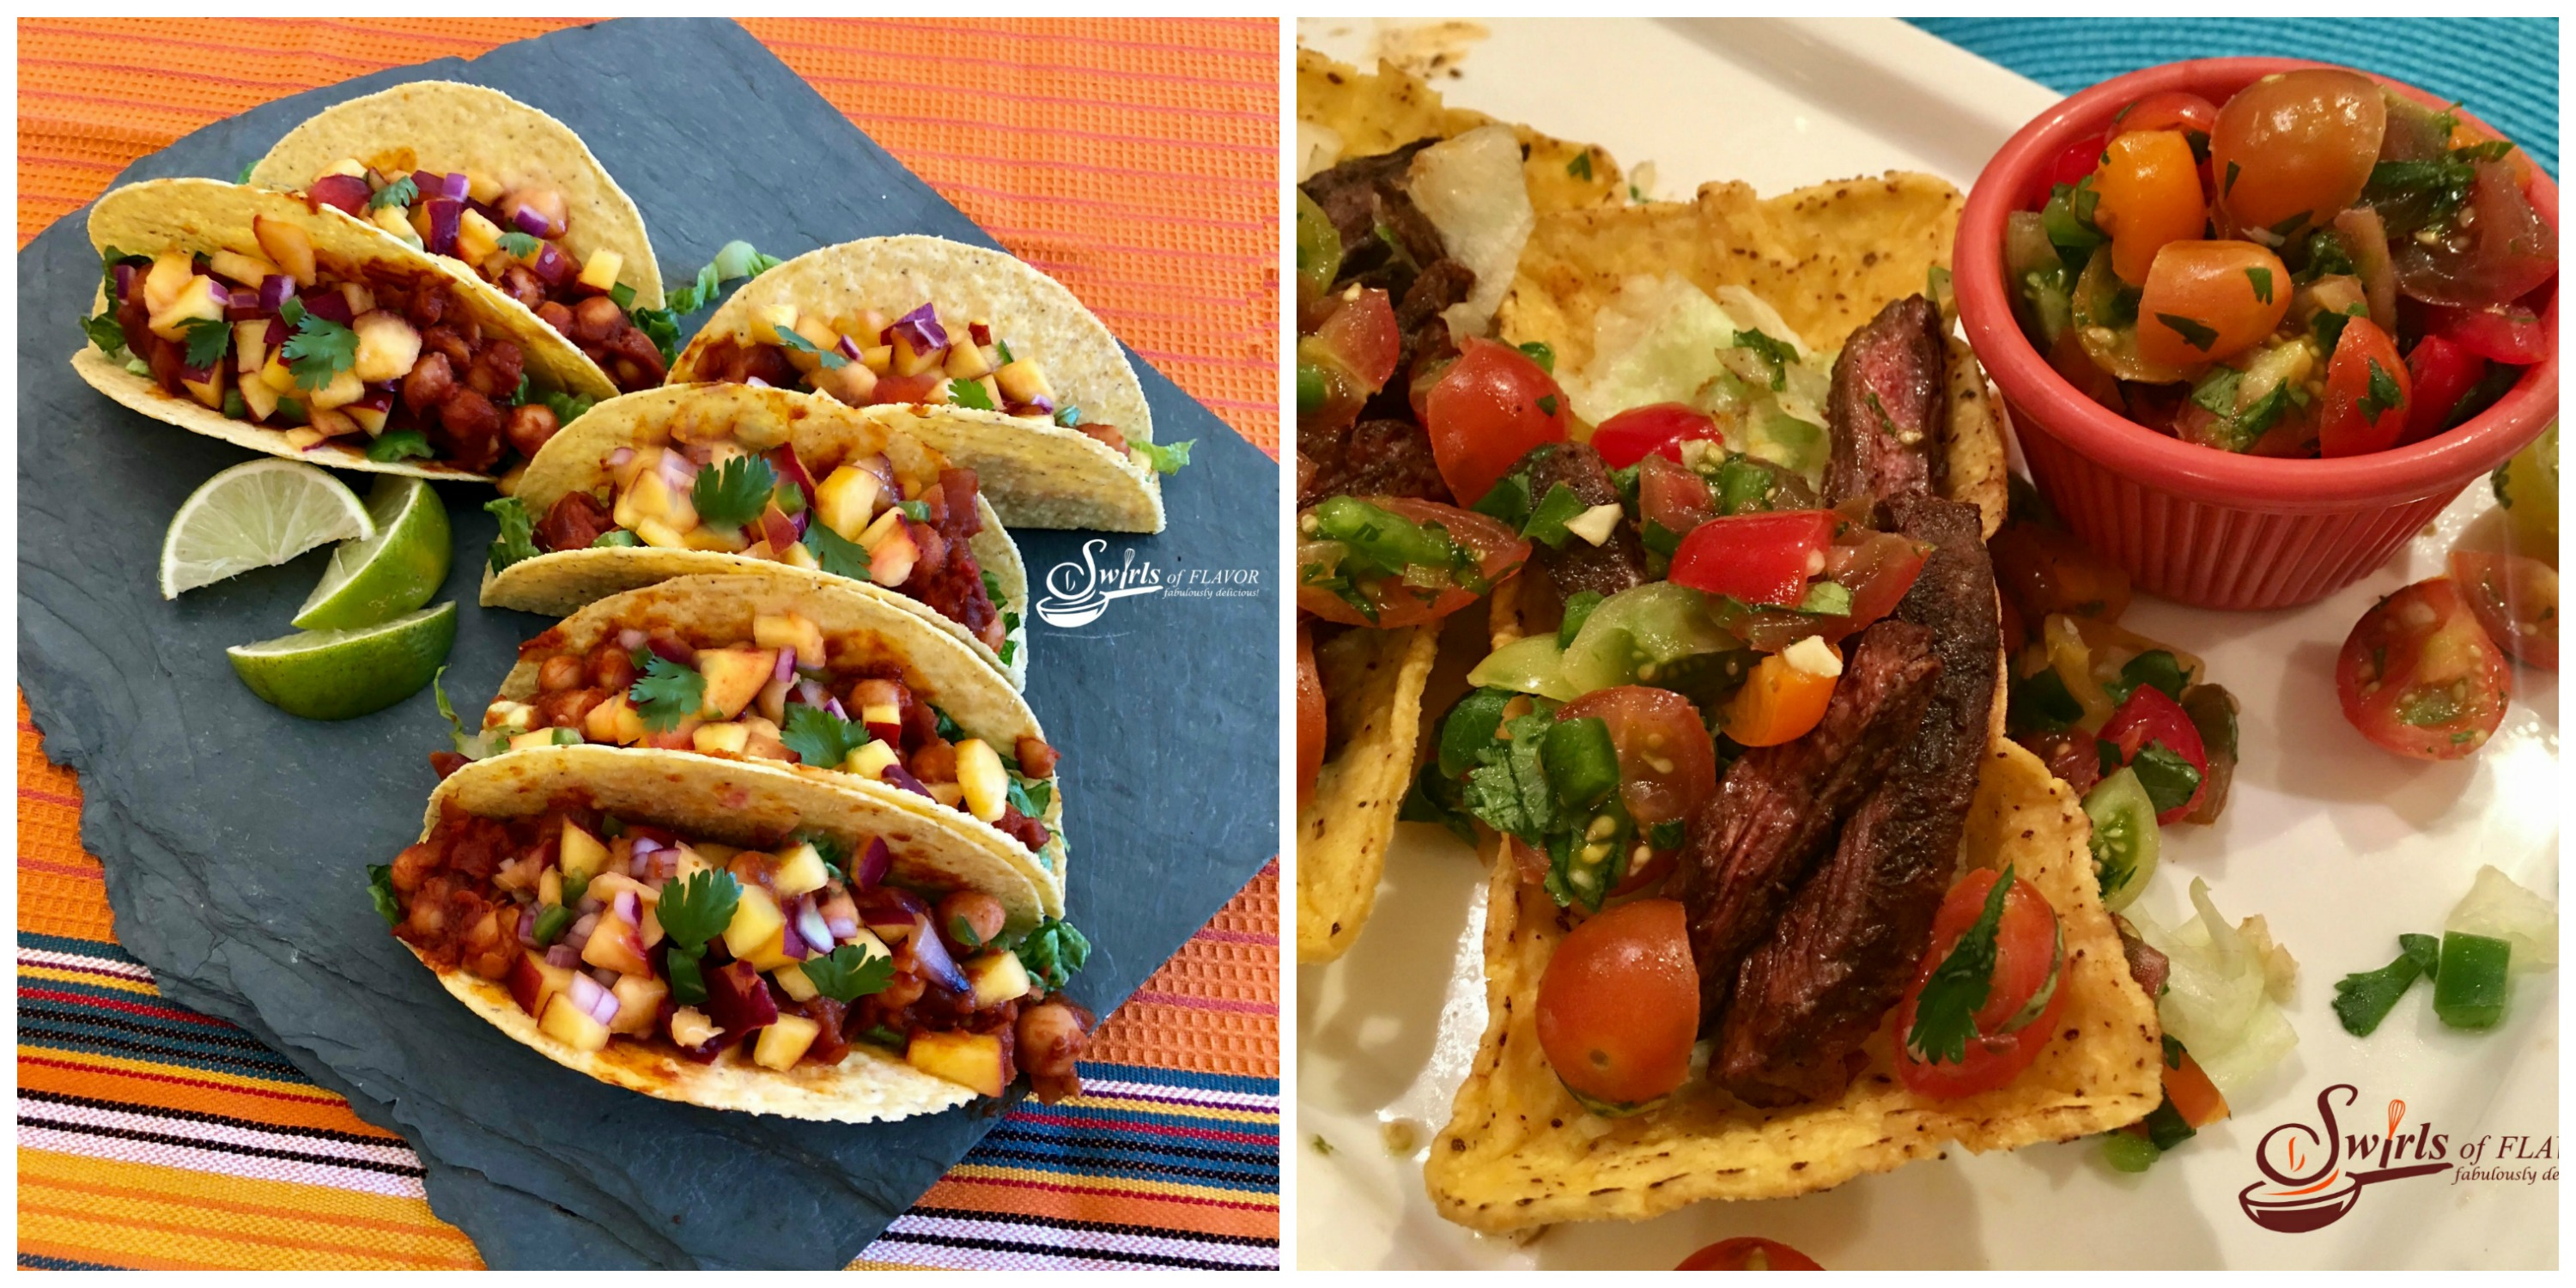 Vegan Chickpea Tacos and Spiced Skirt Steak Tacos